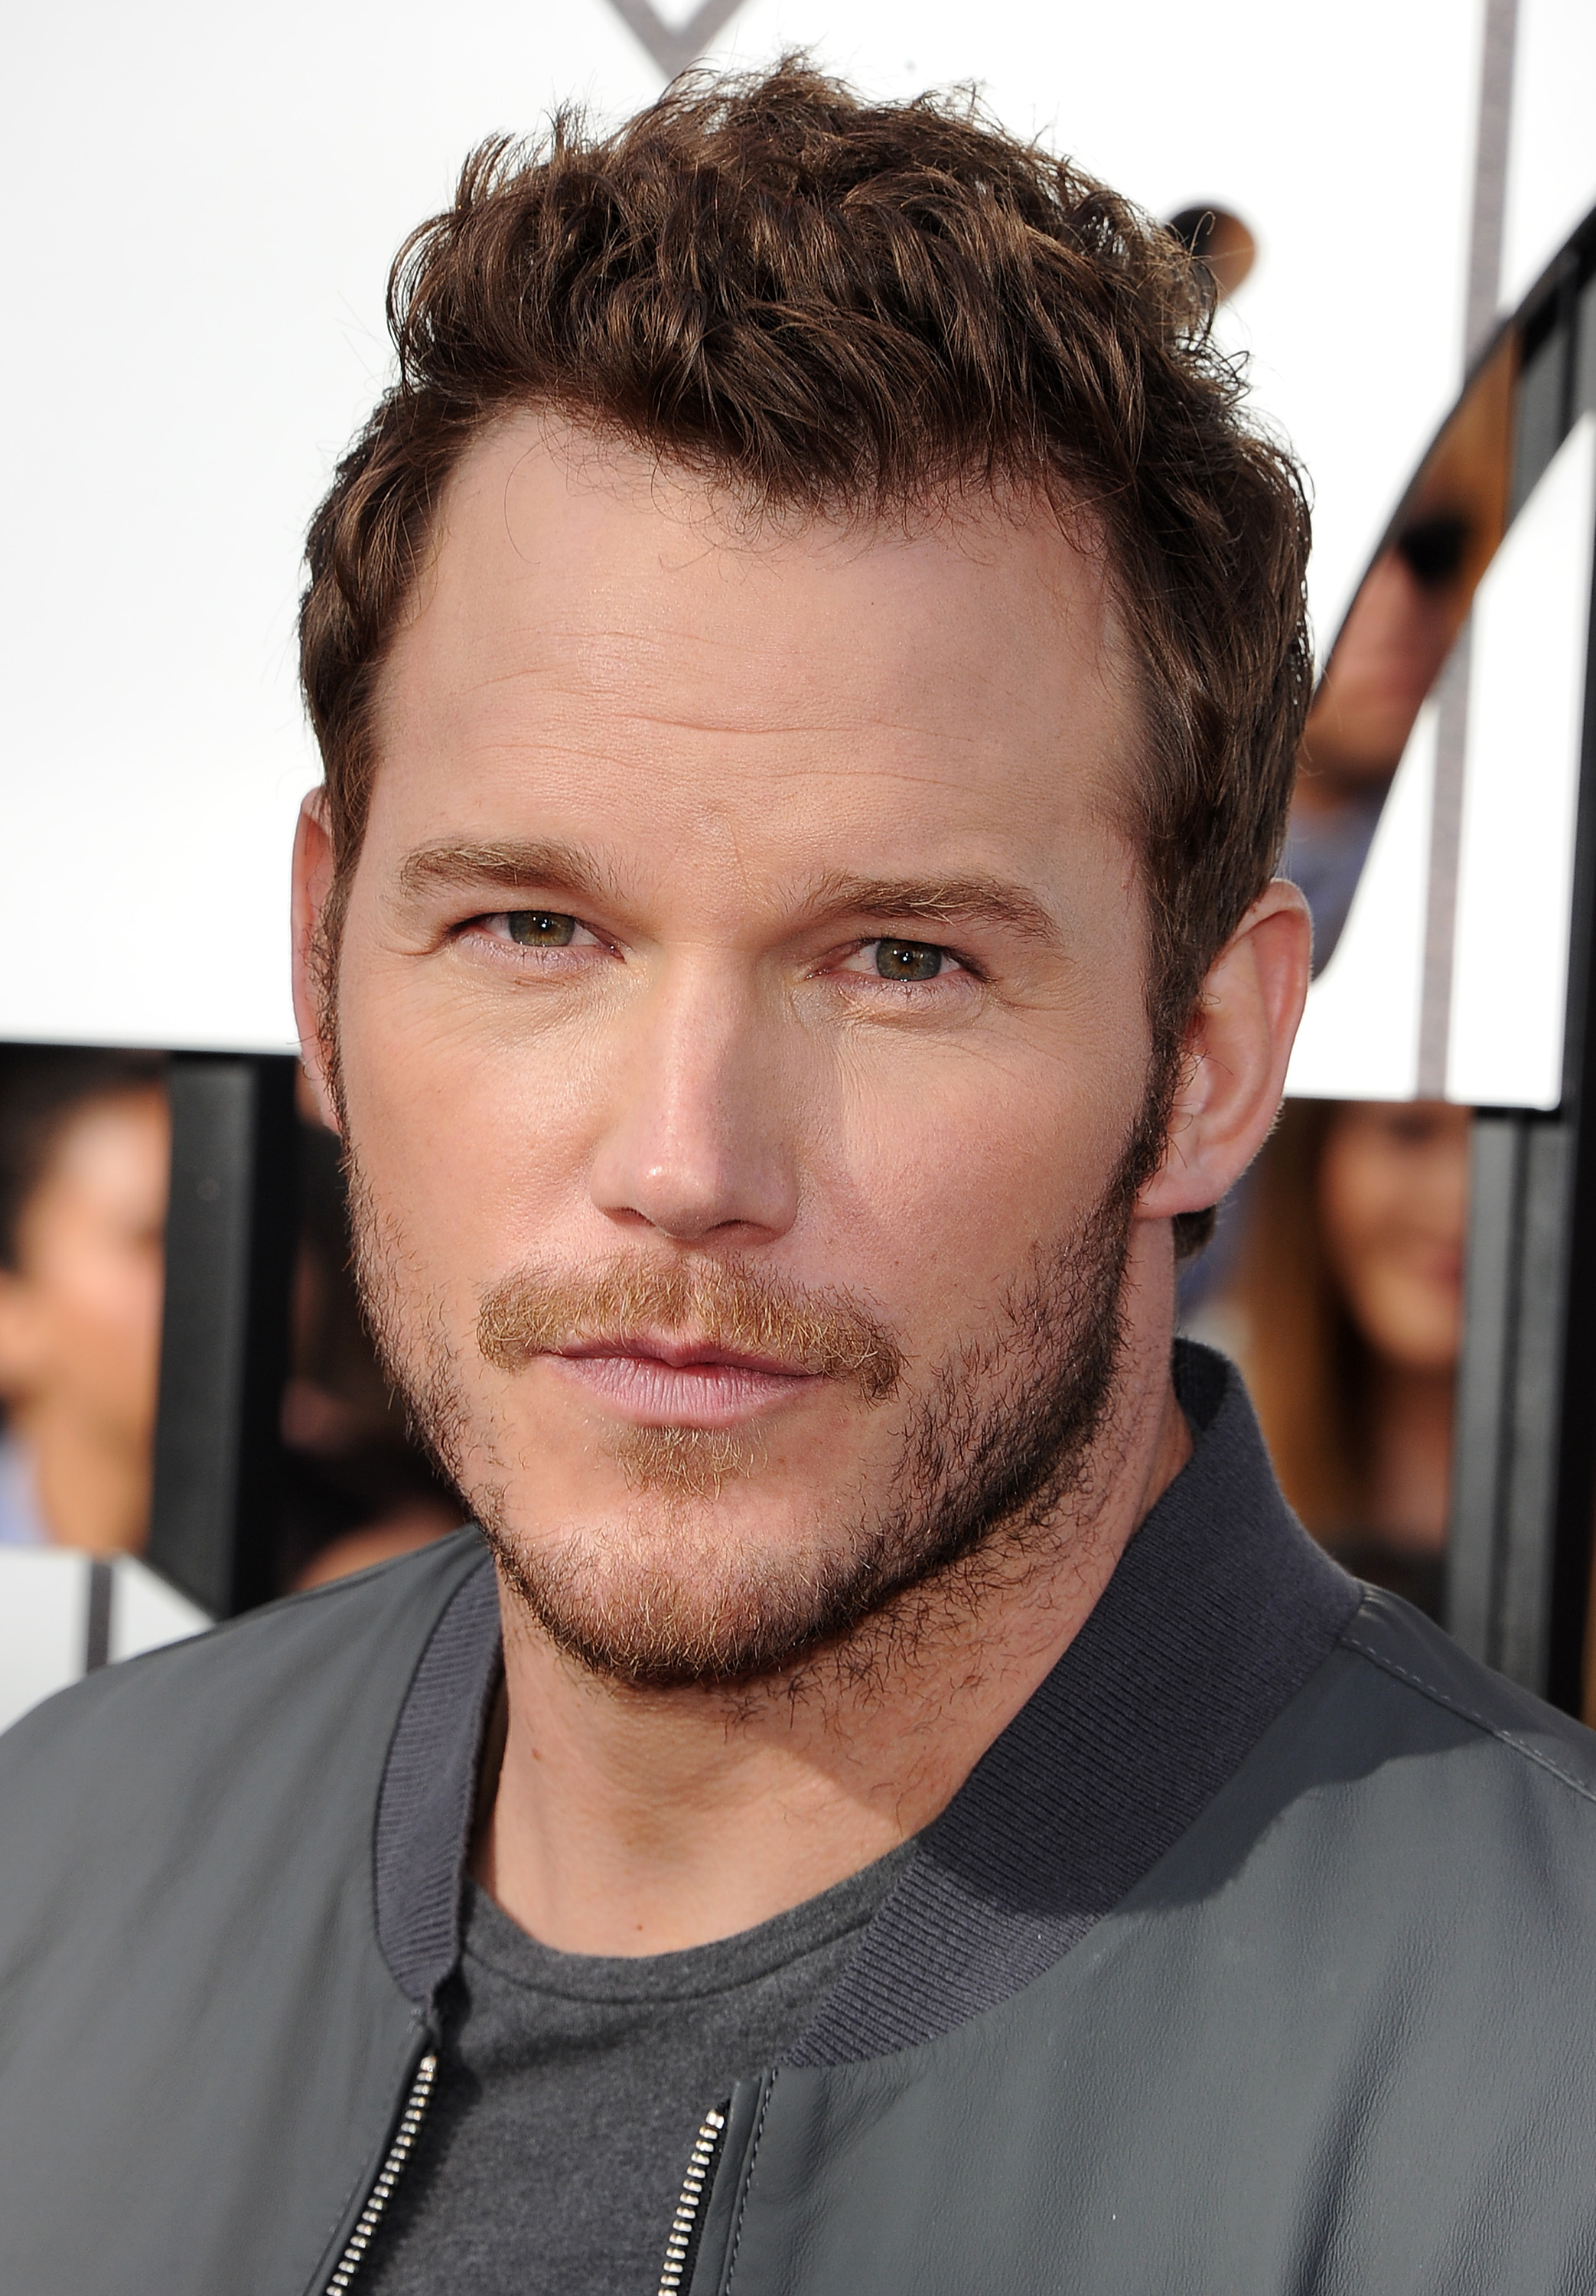 LOS ANGELES, CA - APRIL 13:  Actor Chris Pratt attends the 2014 MTV Movie Awards at Nokia Theatre L.A. Live on April 13, 2014 in Los Angeles, California.  (Photo by Steve Granitz/WireImage)